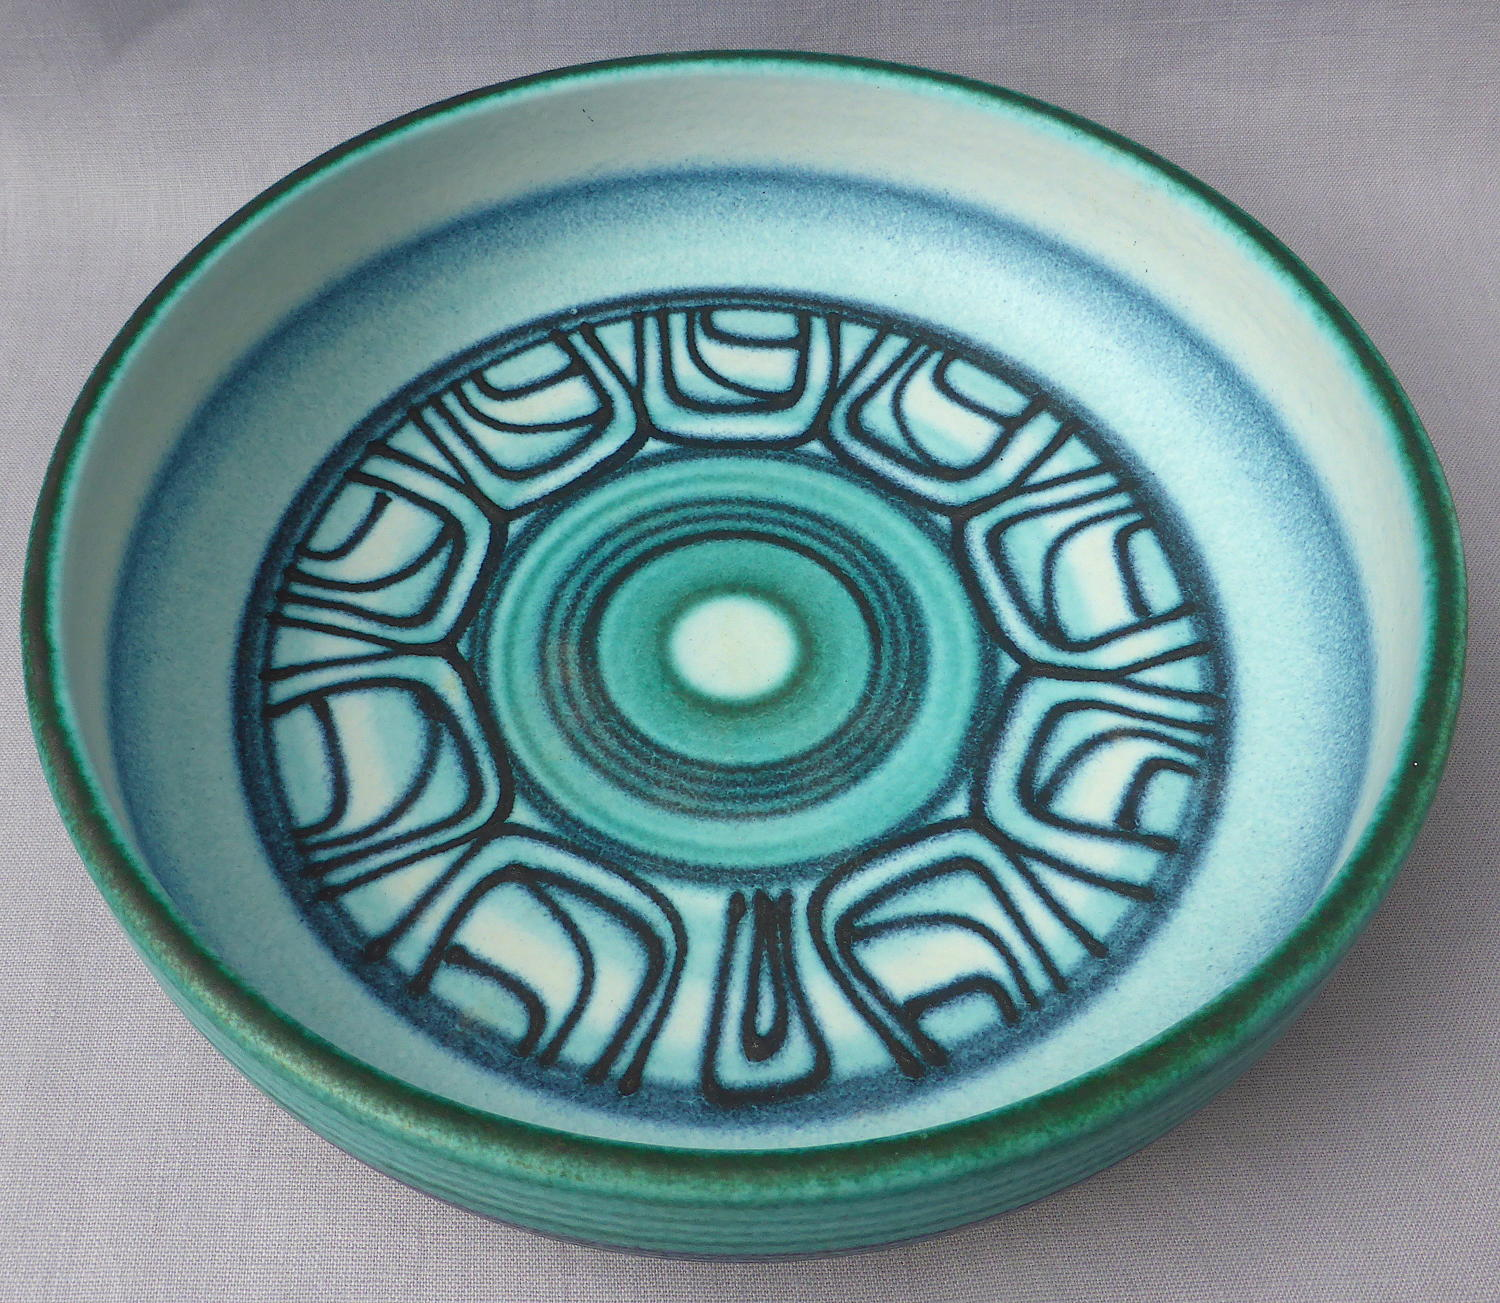 Spanish art pottery bowl by Jordi Serra Moragas